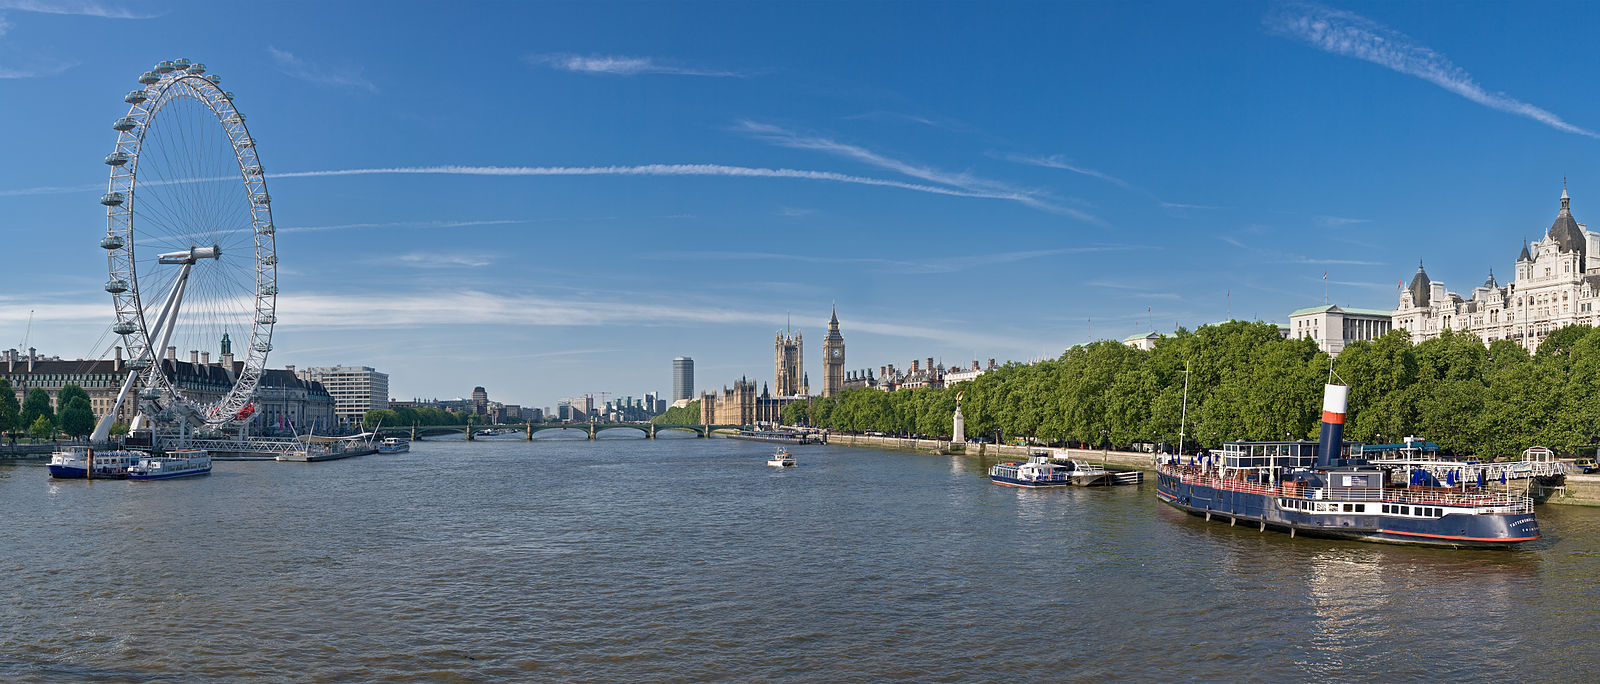 river thames and london